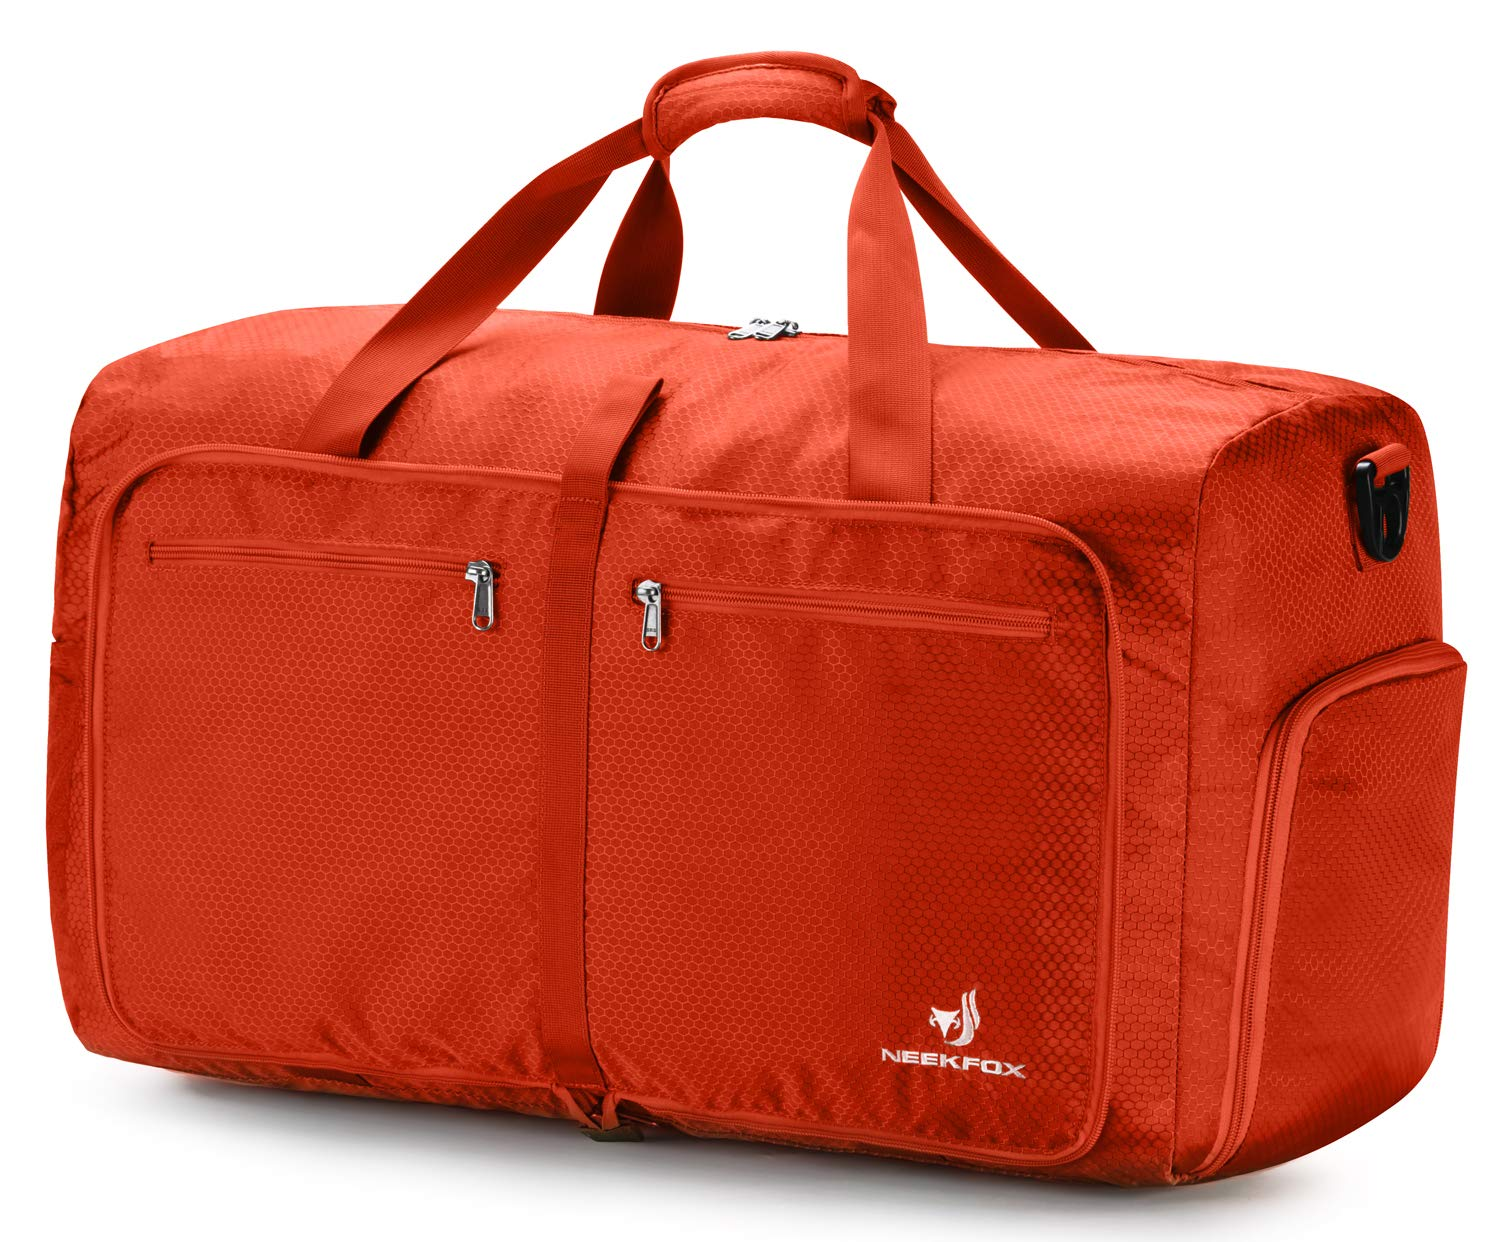 8f0875ff90c5 Details about NEEKFOX Foldable Travel Duffel Bag Large Packable Lightweight  Luggage Orange